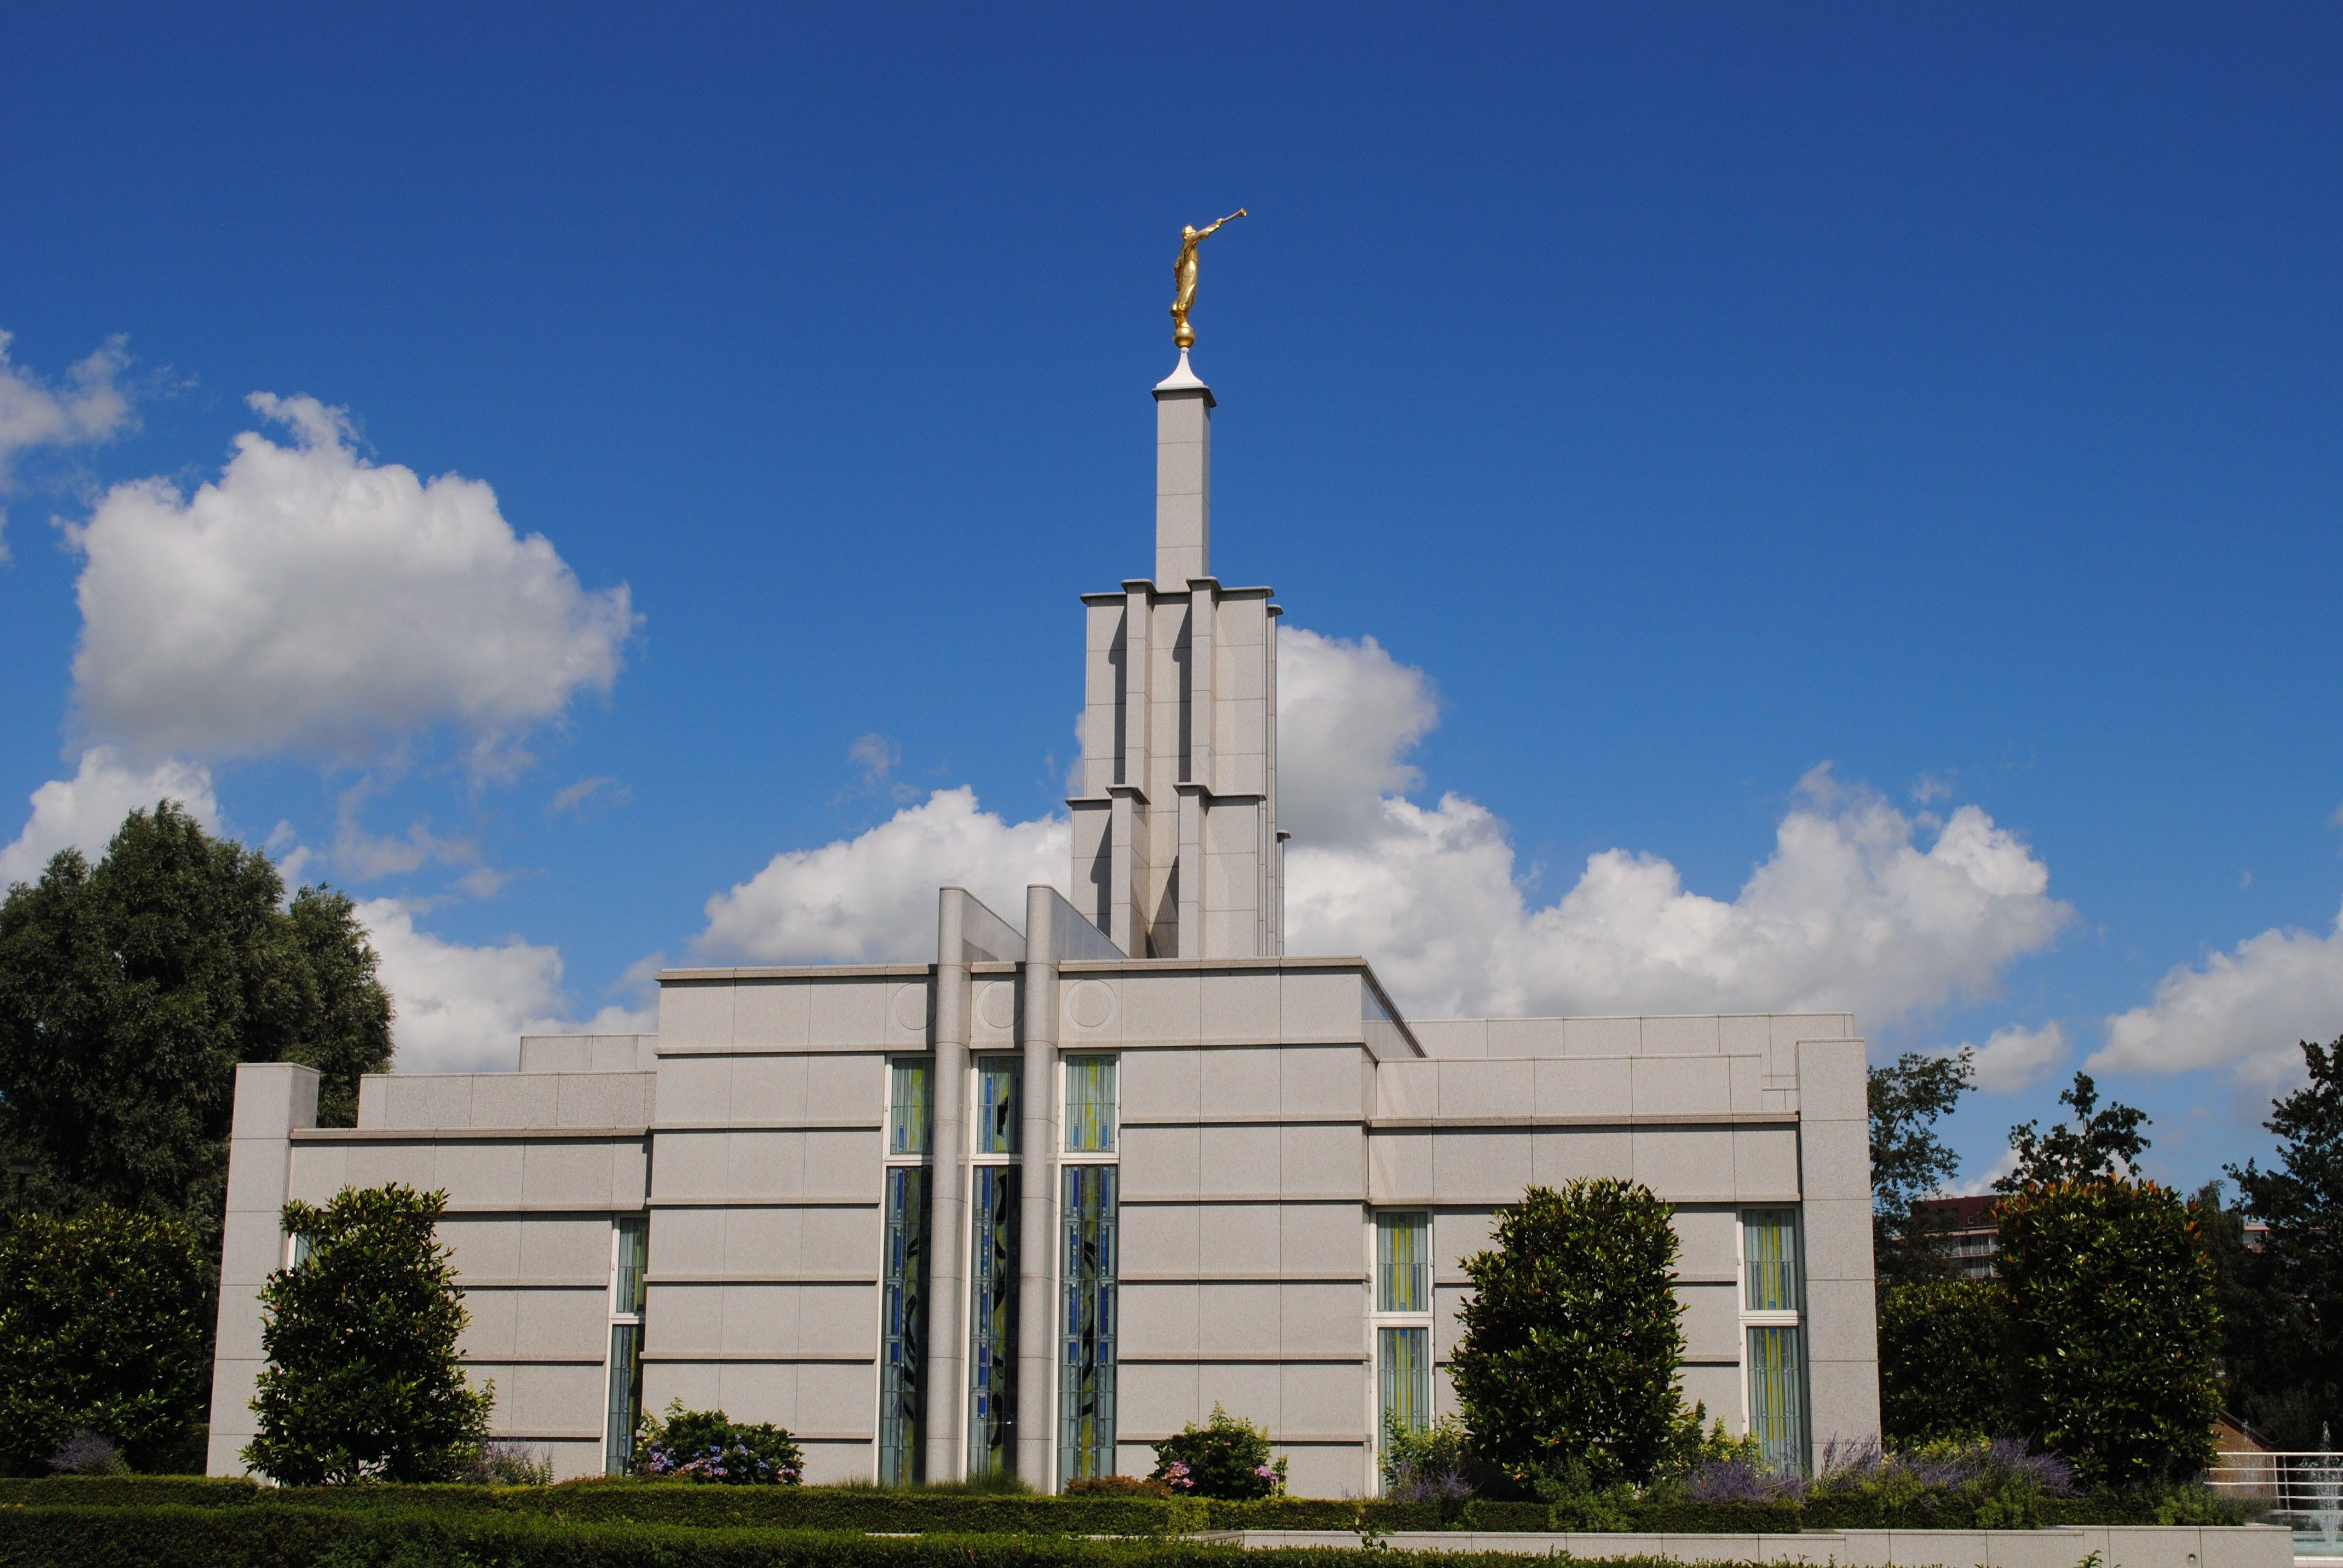 The Hague Netherlands Temple south side, including scenery.